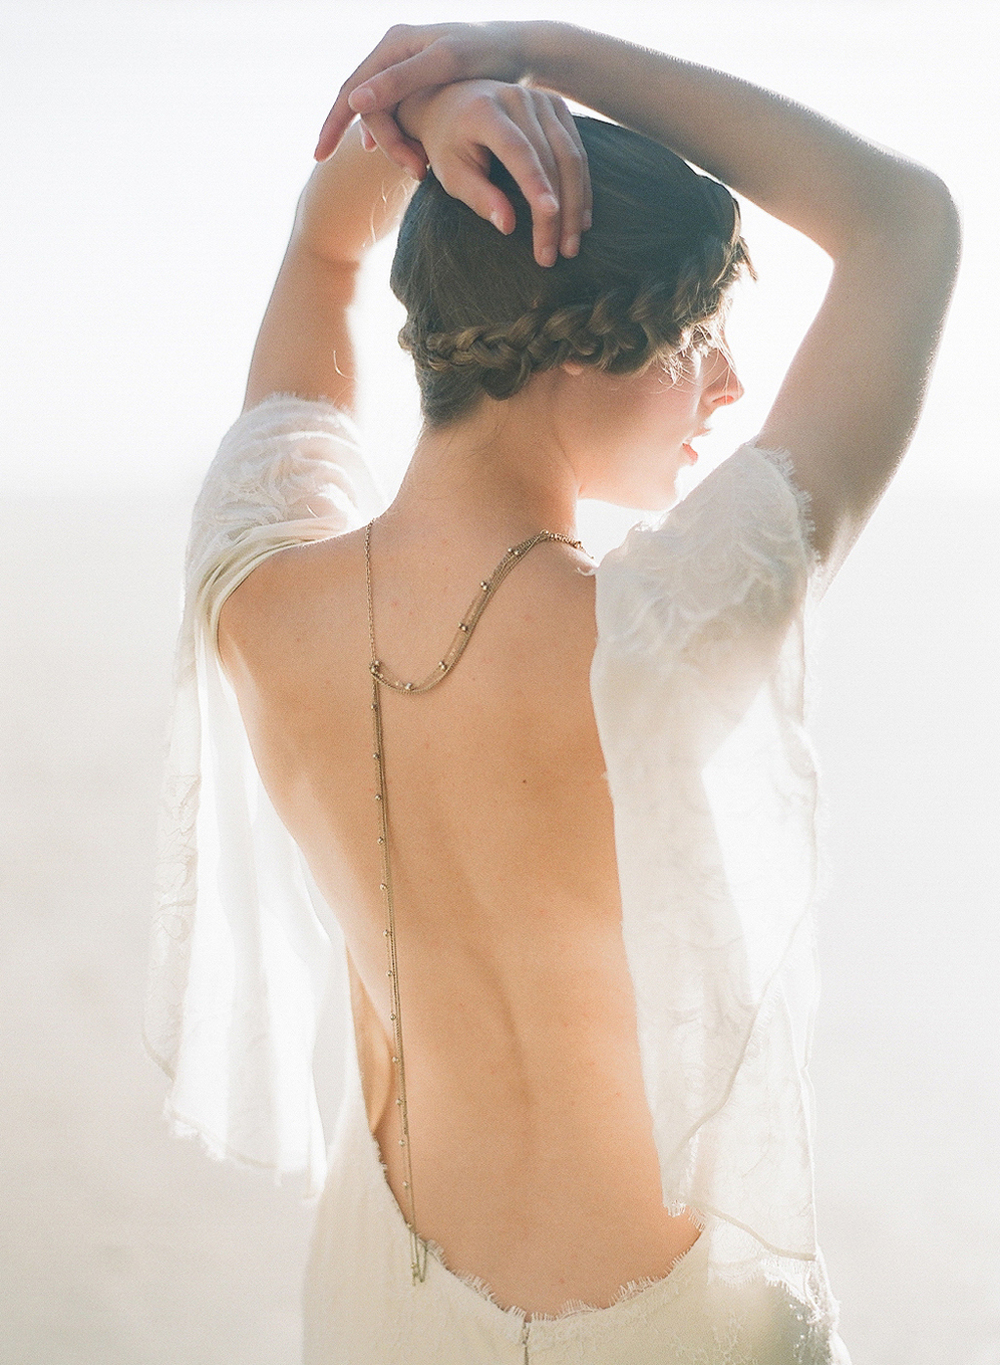 bride poses at golden hour at this oregon coast wedding photographed by Destination wedding Photographer Lexia Frank - a film photographer in portland oregon. TOP DESTINATION WEDDING PHOTOGRAPHY, OREGON COAST WEDDING, WWW DOT LEXIA FRANK DOT COM